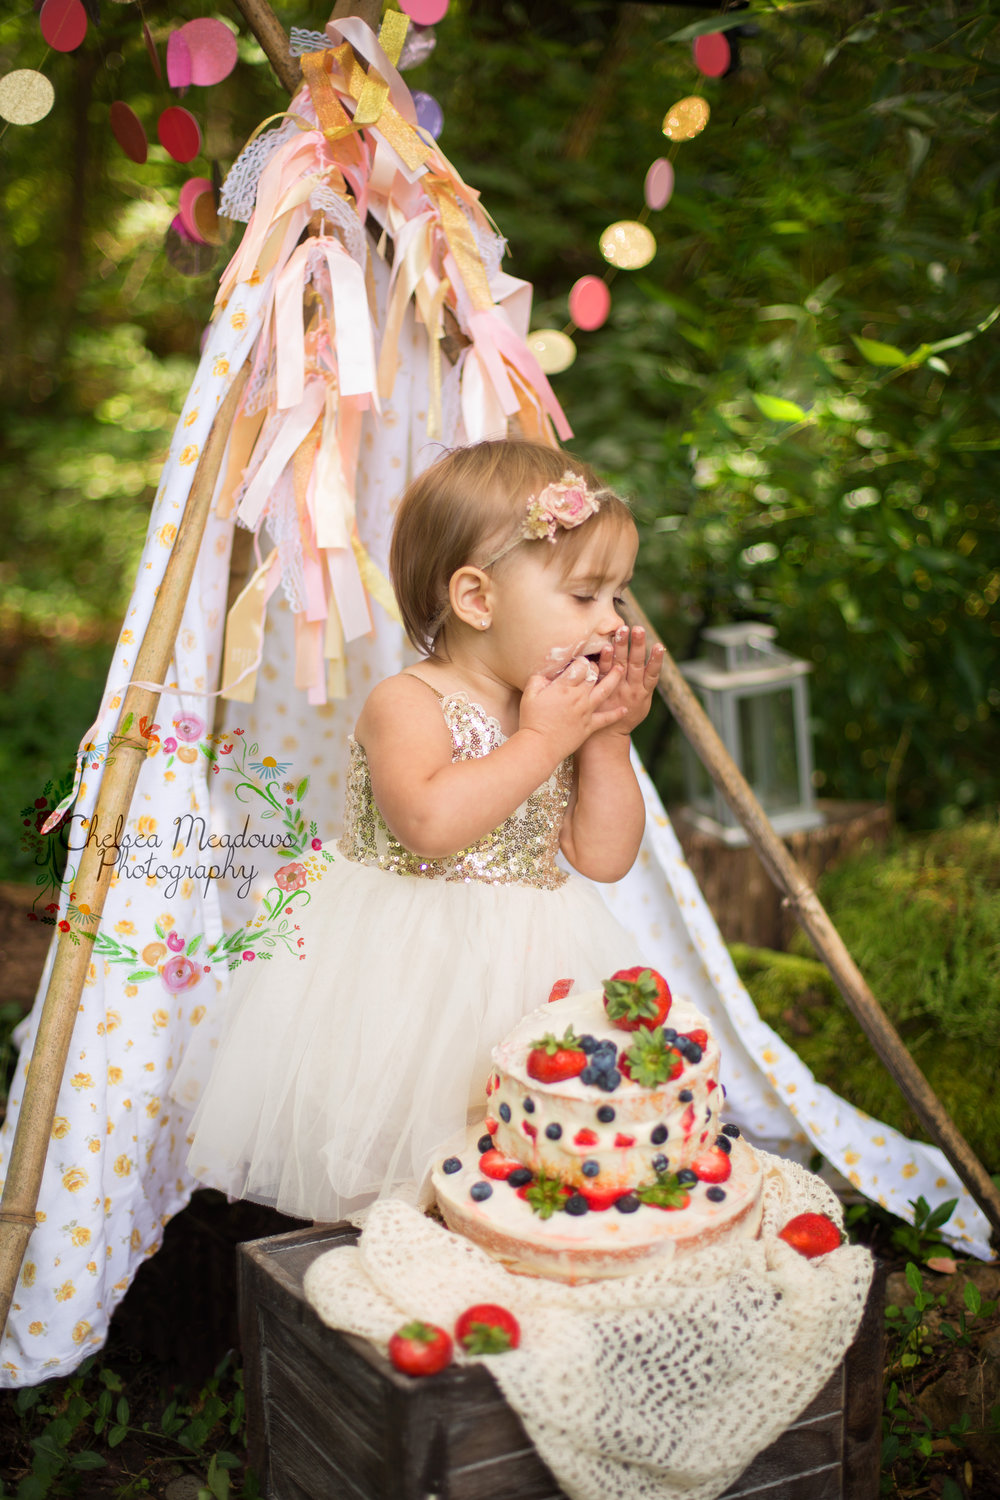 Paisley First Birthay Cake Smash - Nashville Family Photographer - Chelsea Meadows Photography (22).jpg